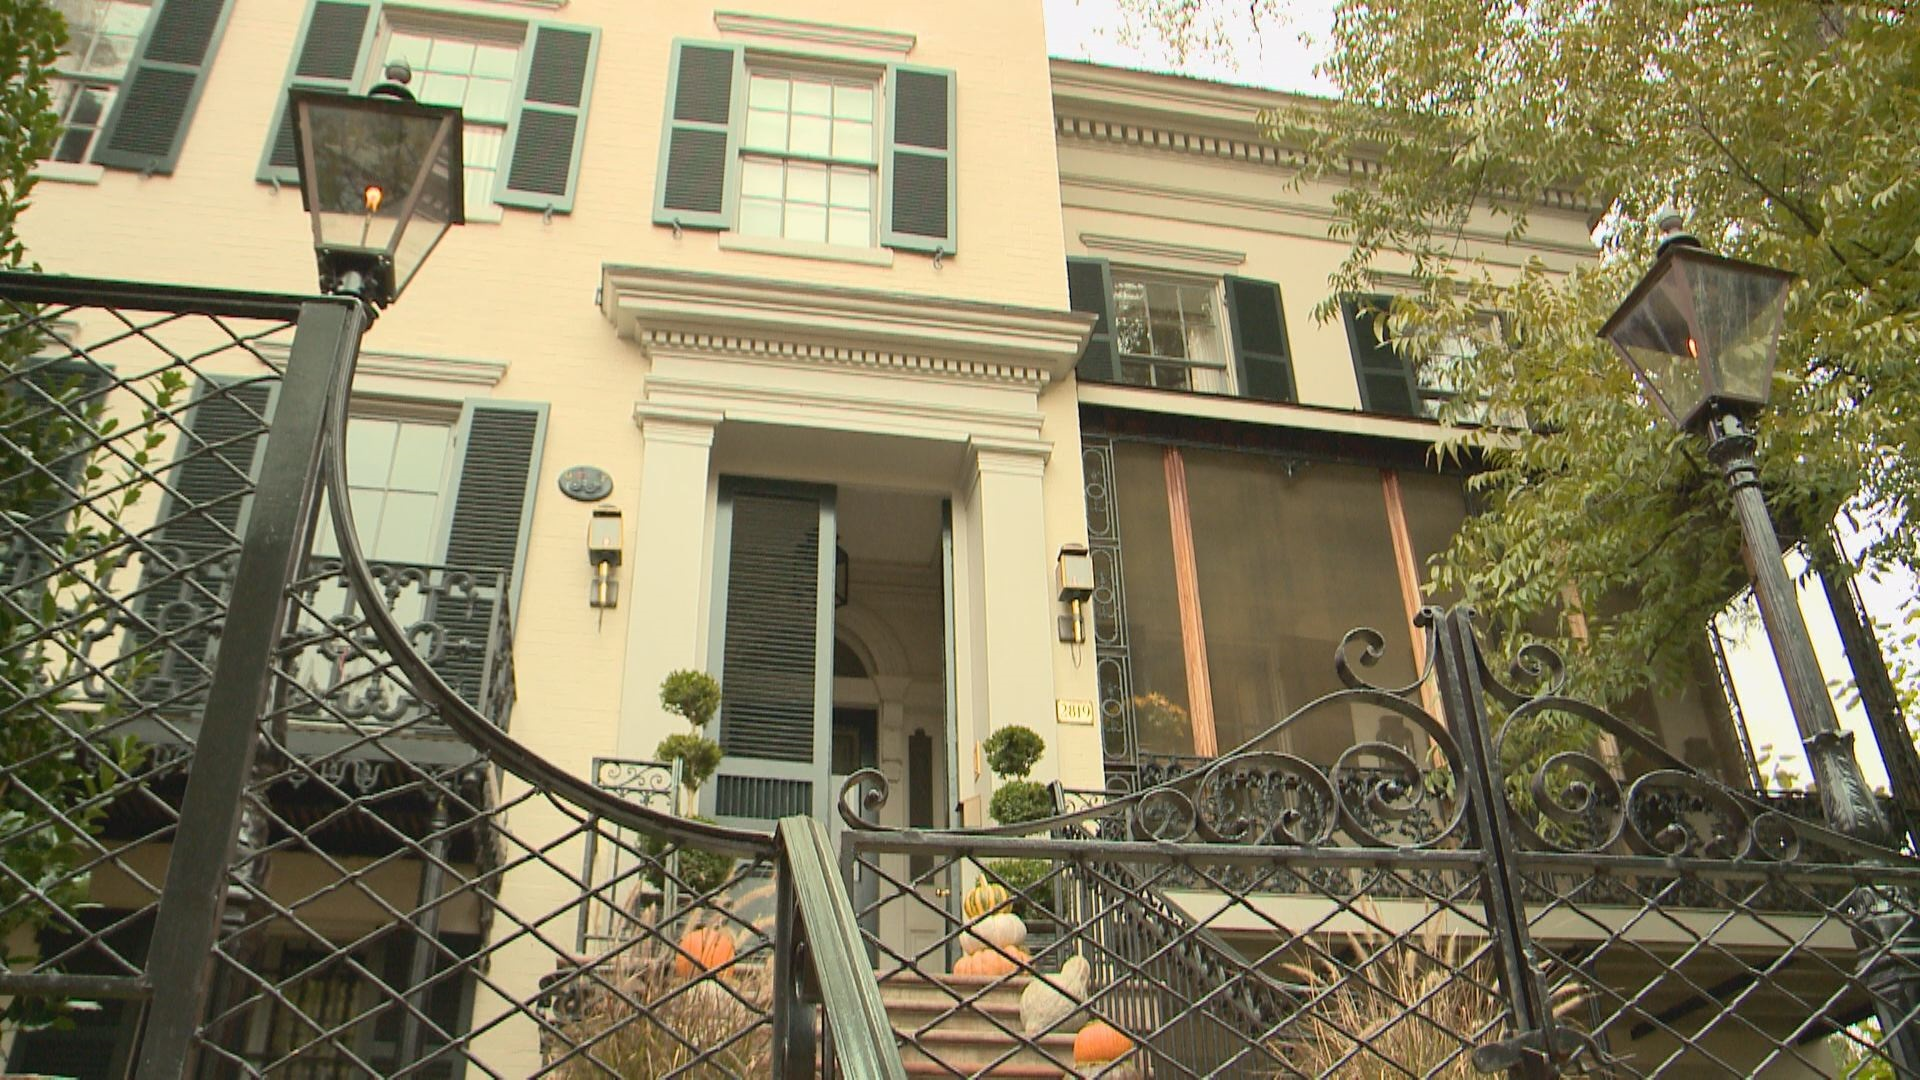 Rape reported at Georgetown mansion party, police investigating ...